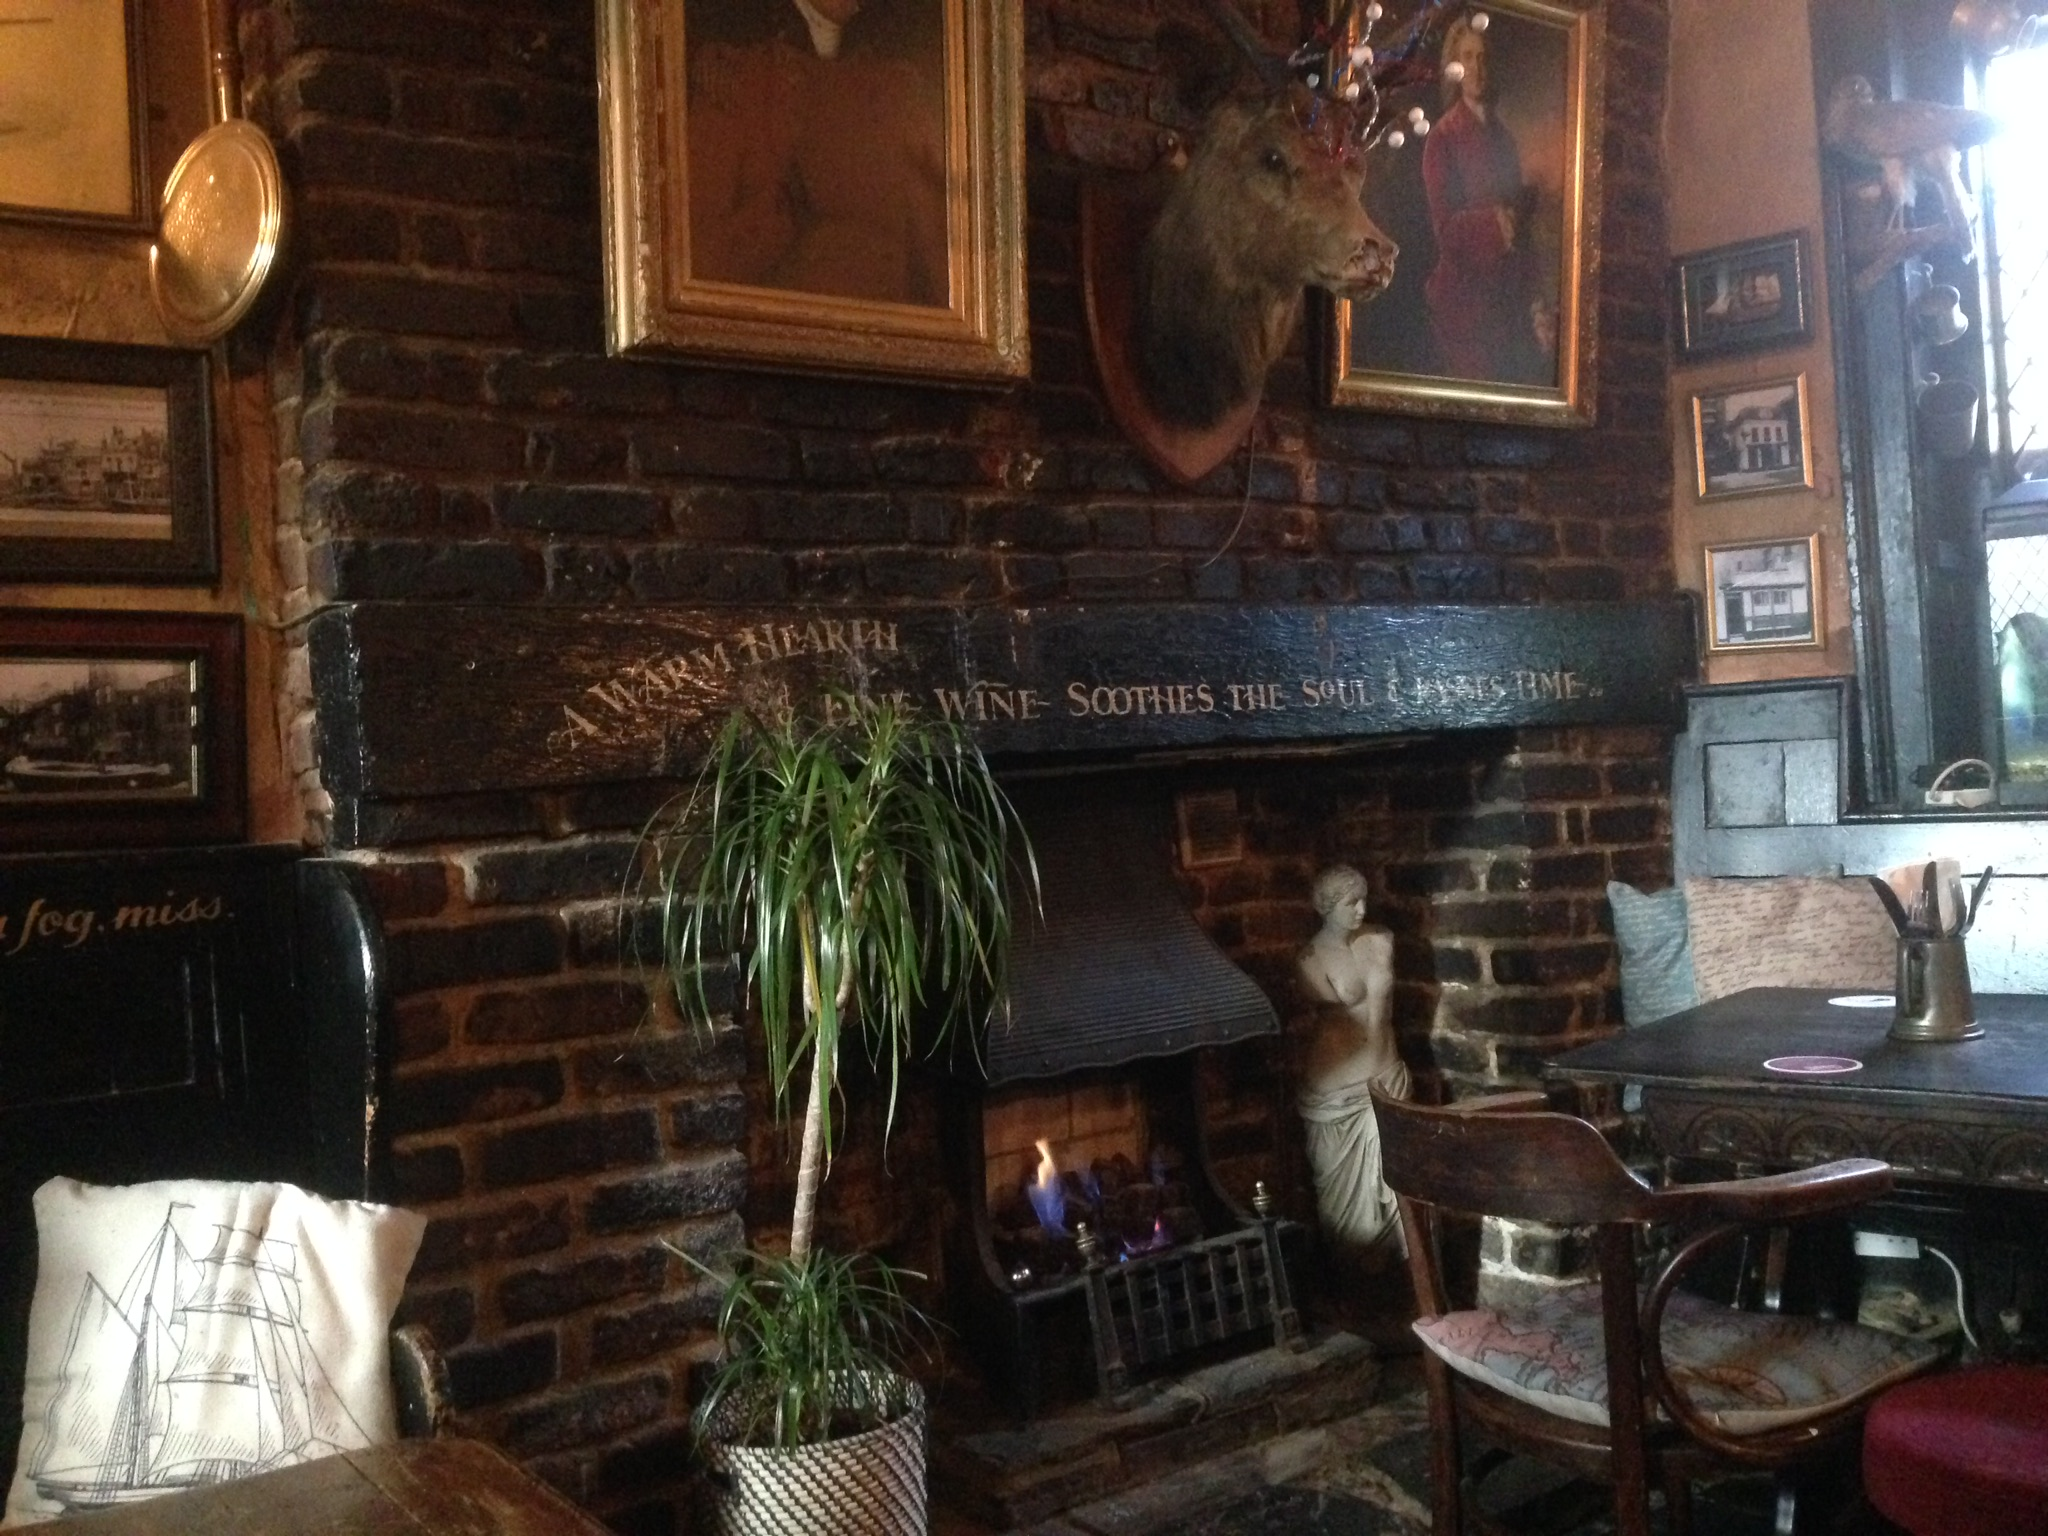 Inside Mayflower pub